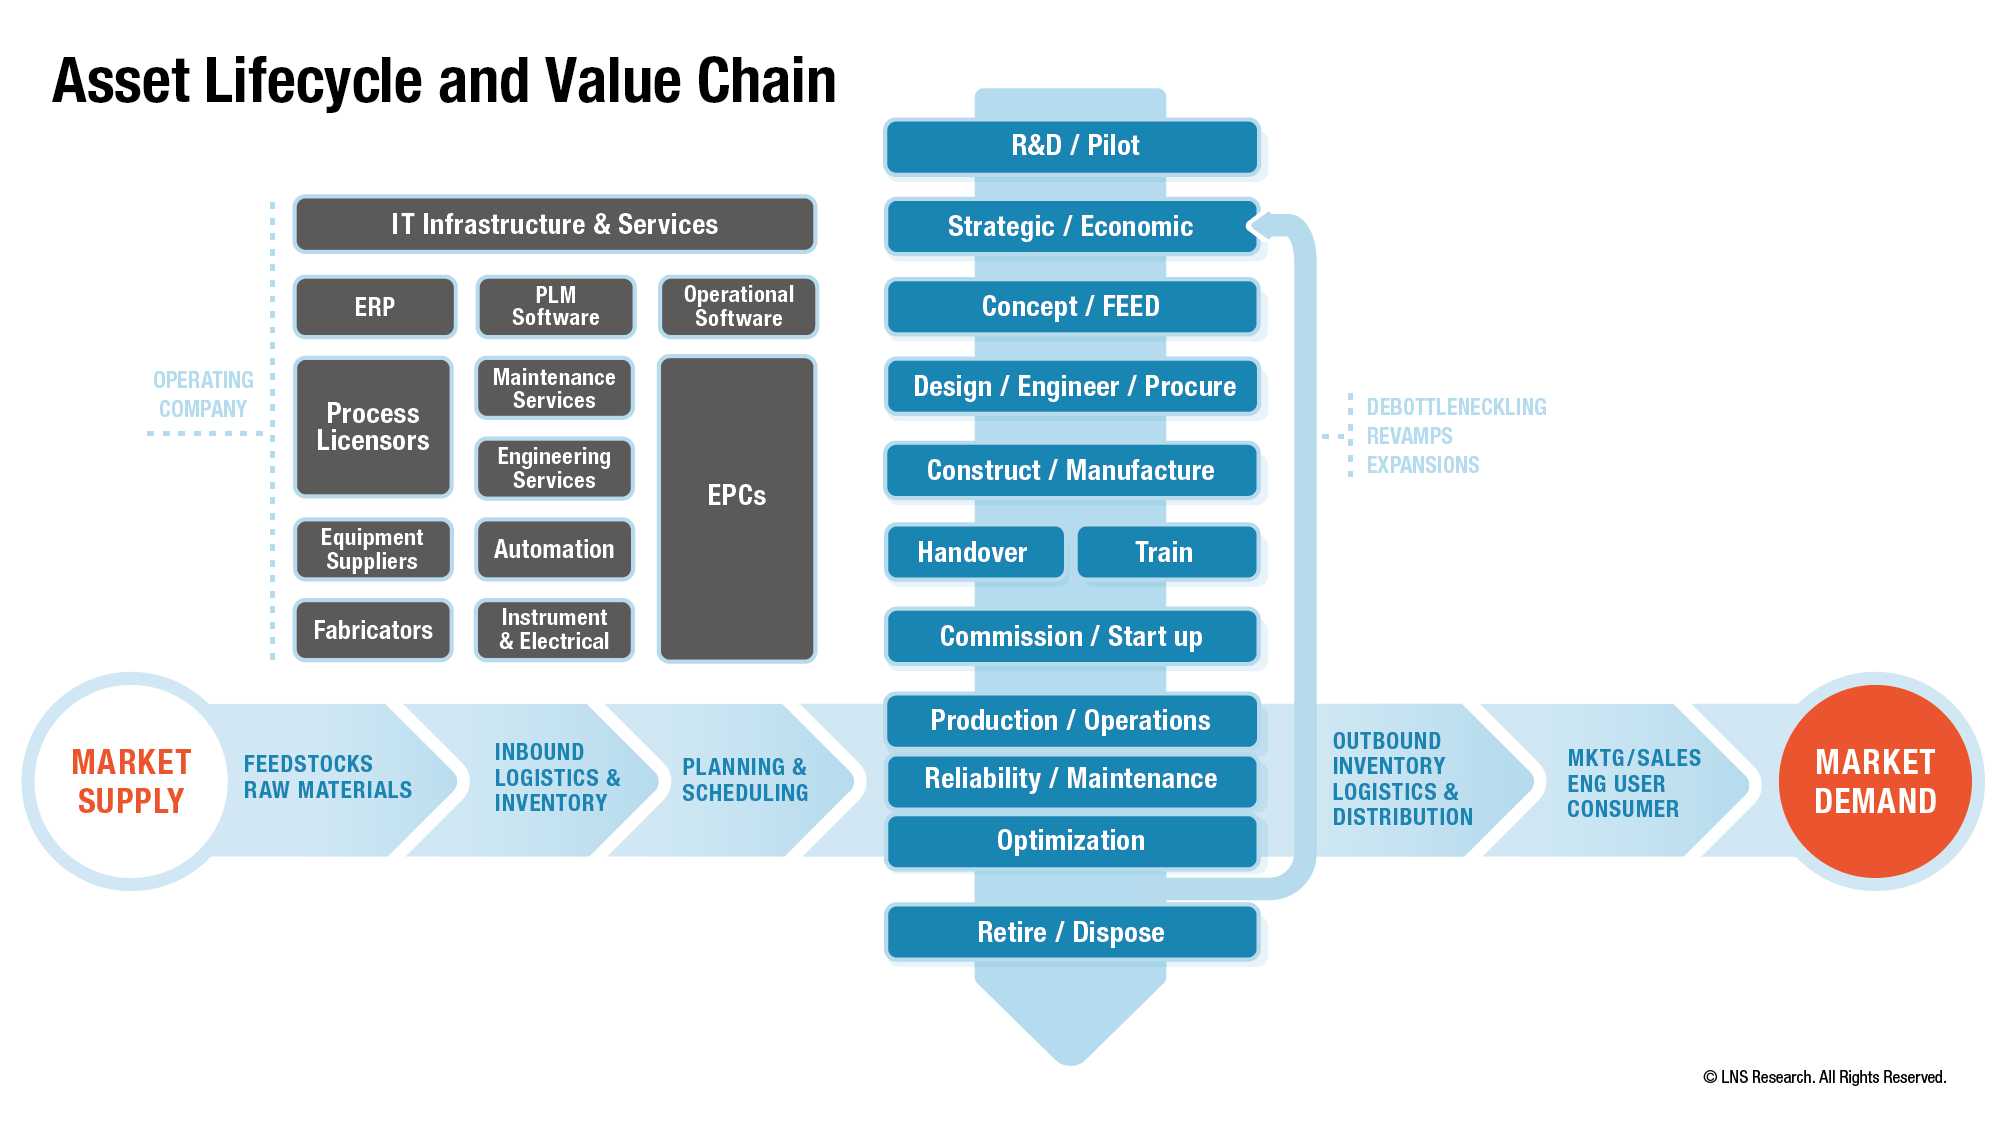 Asset Lifecycle and Value Chain